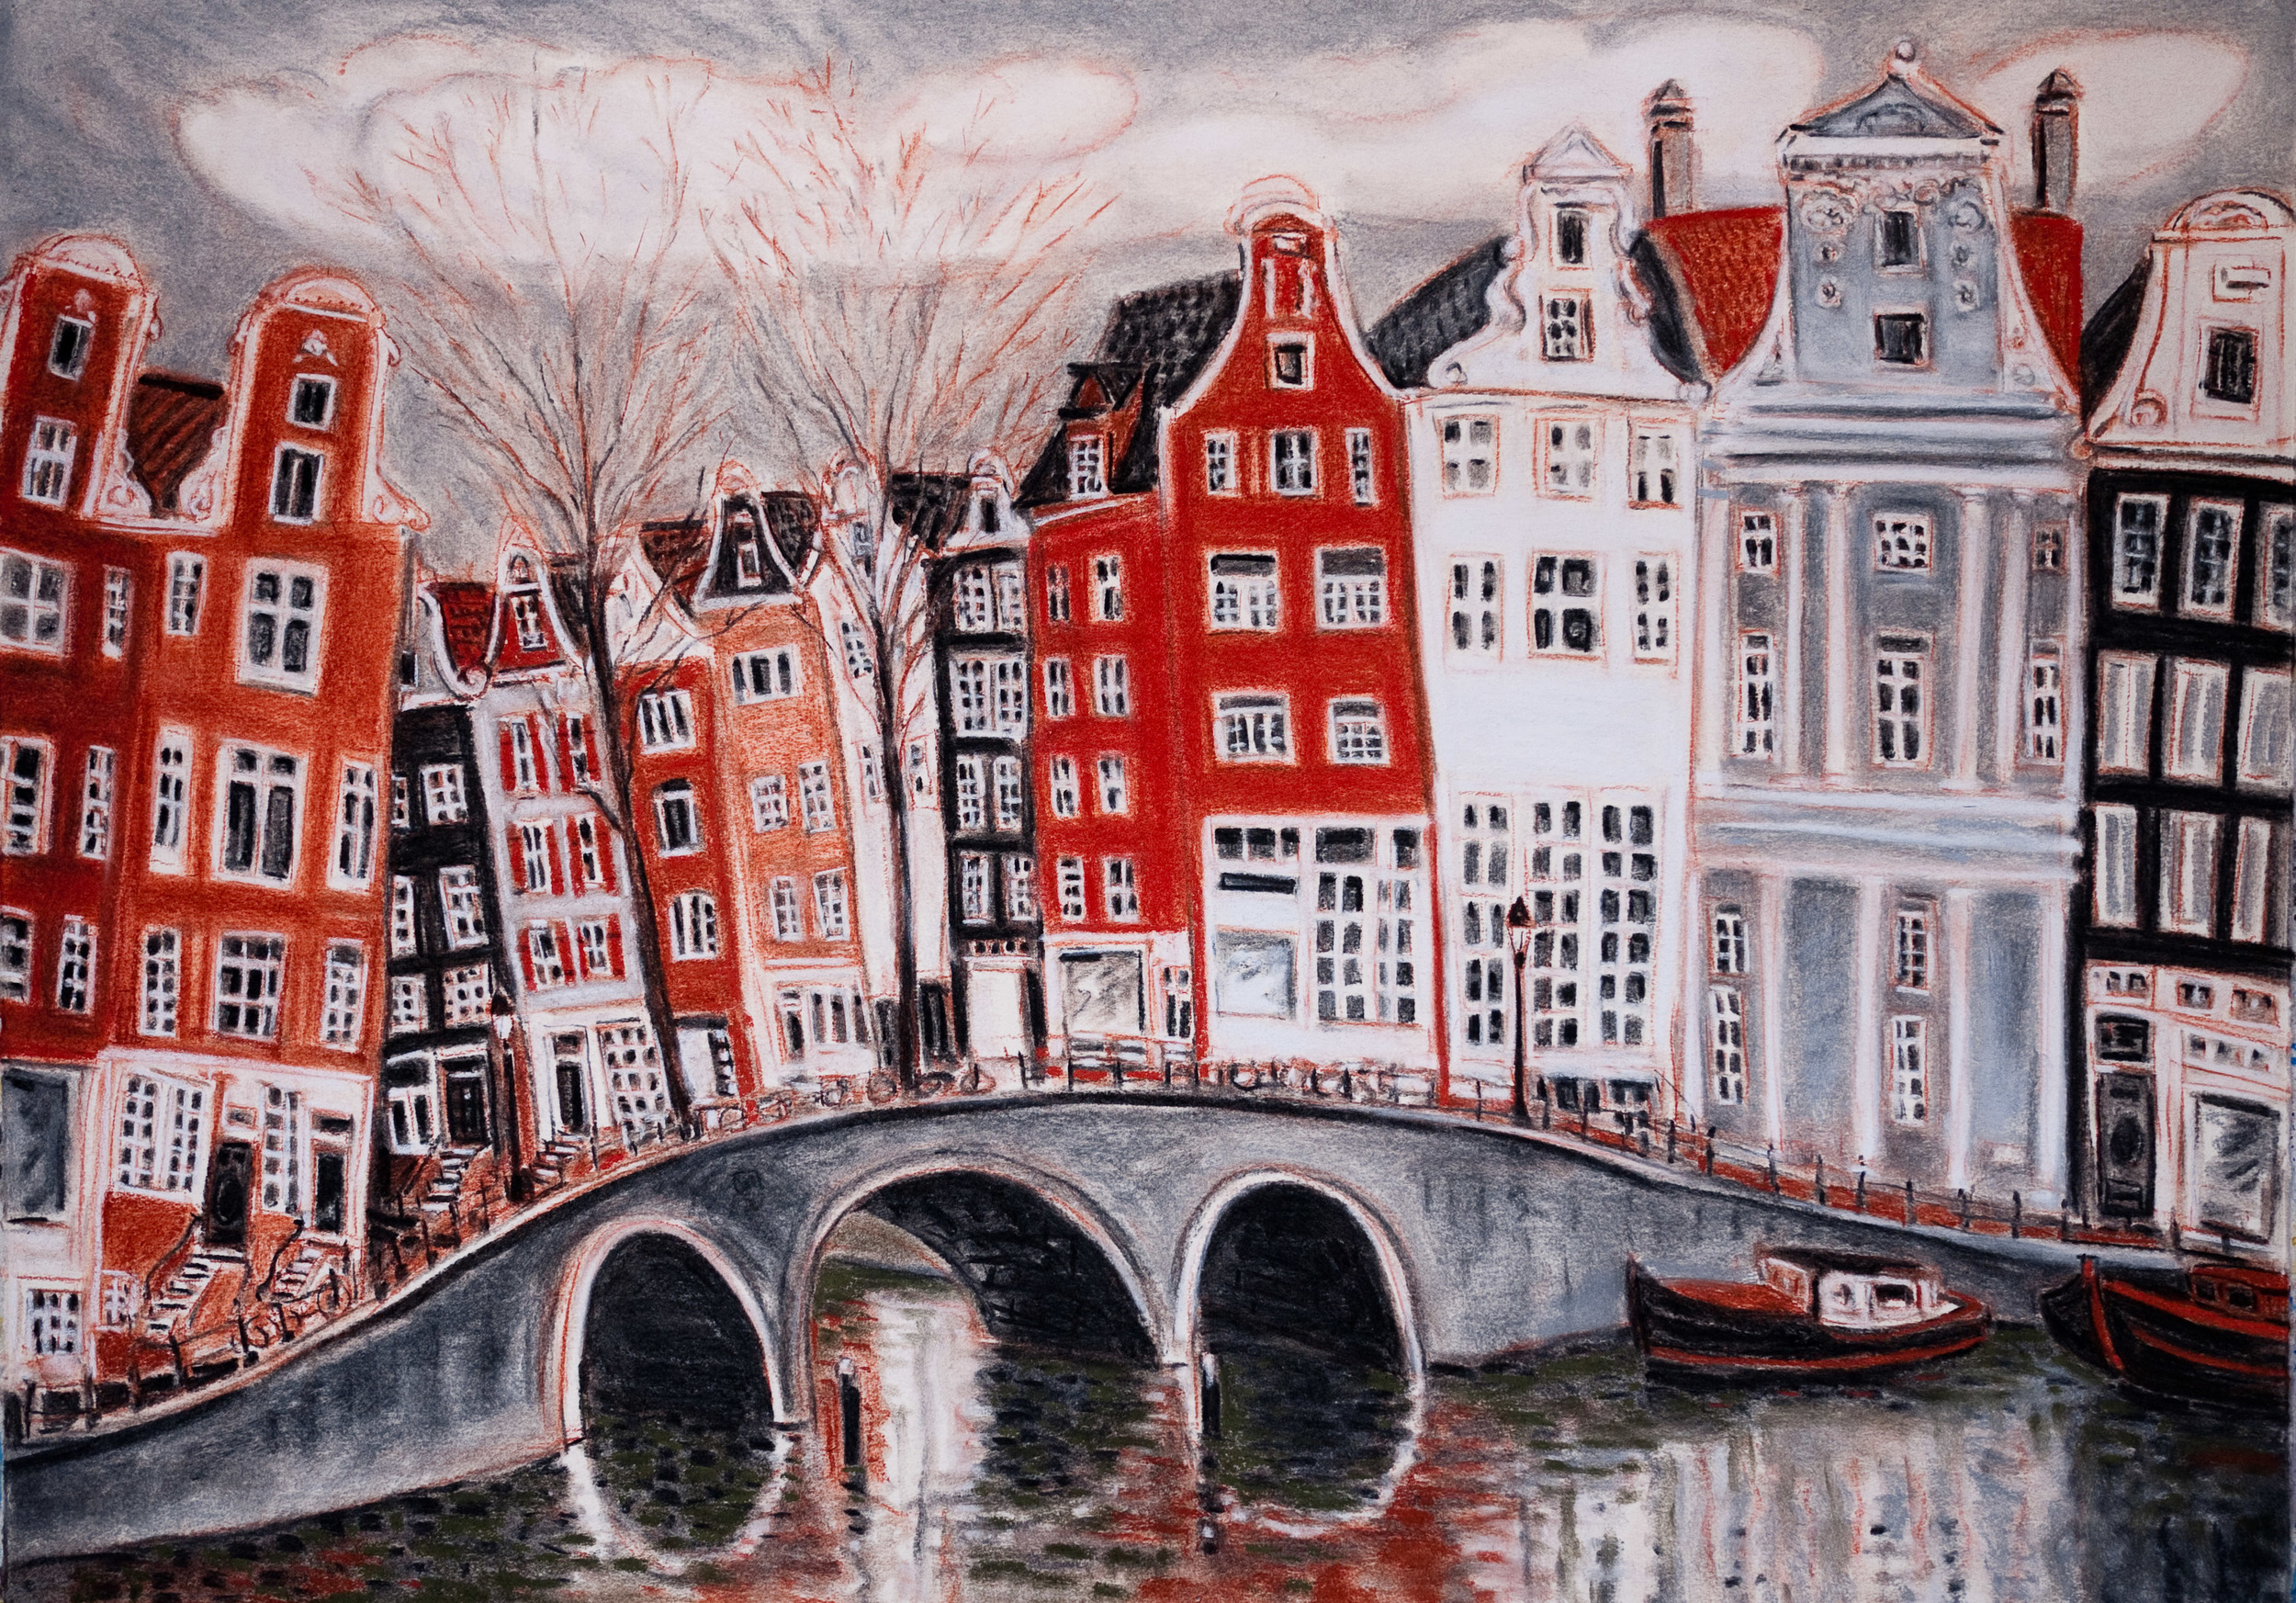 Amsterdam Canals, Prinsengracht Canal #2, pastel 22x30